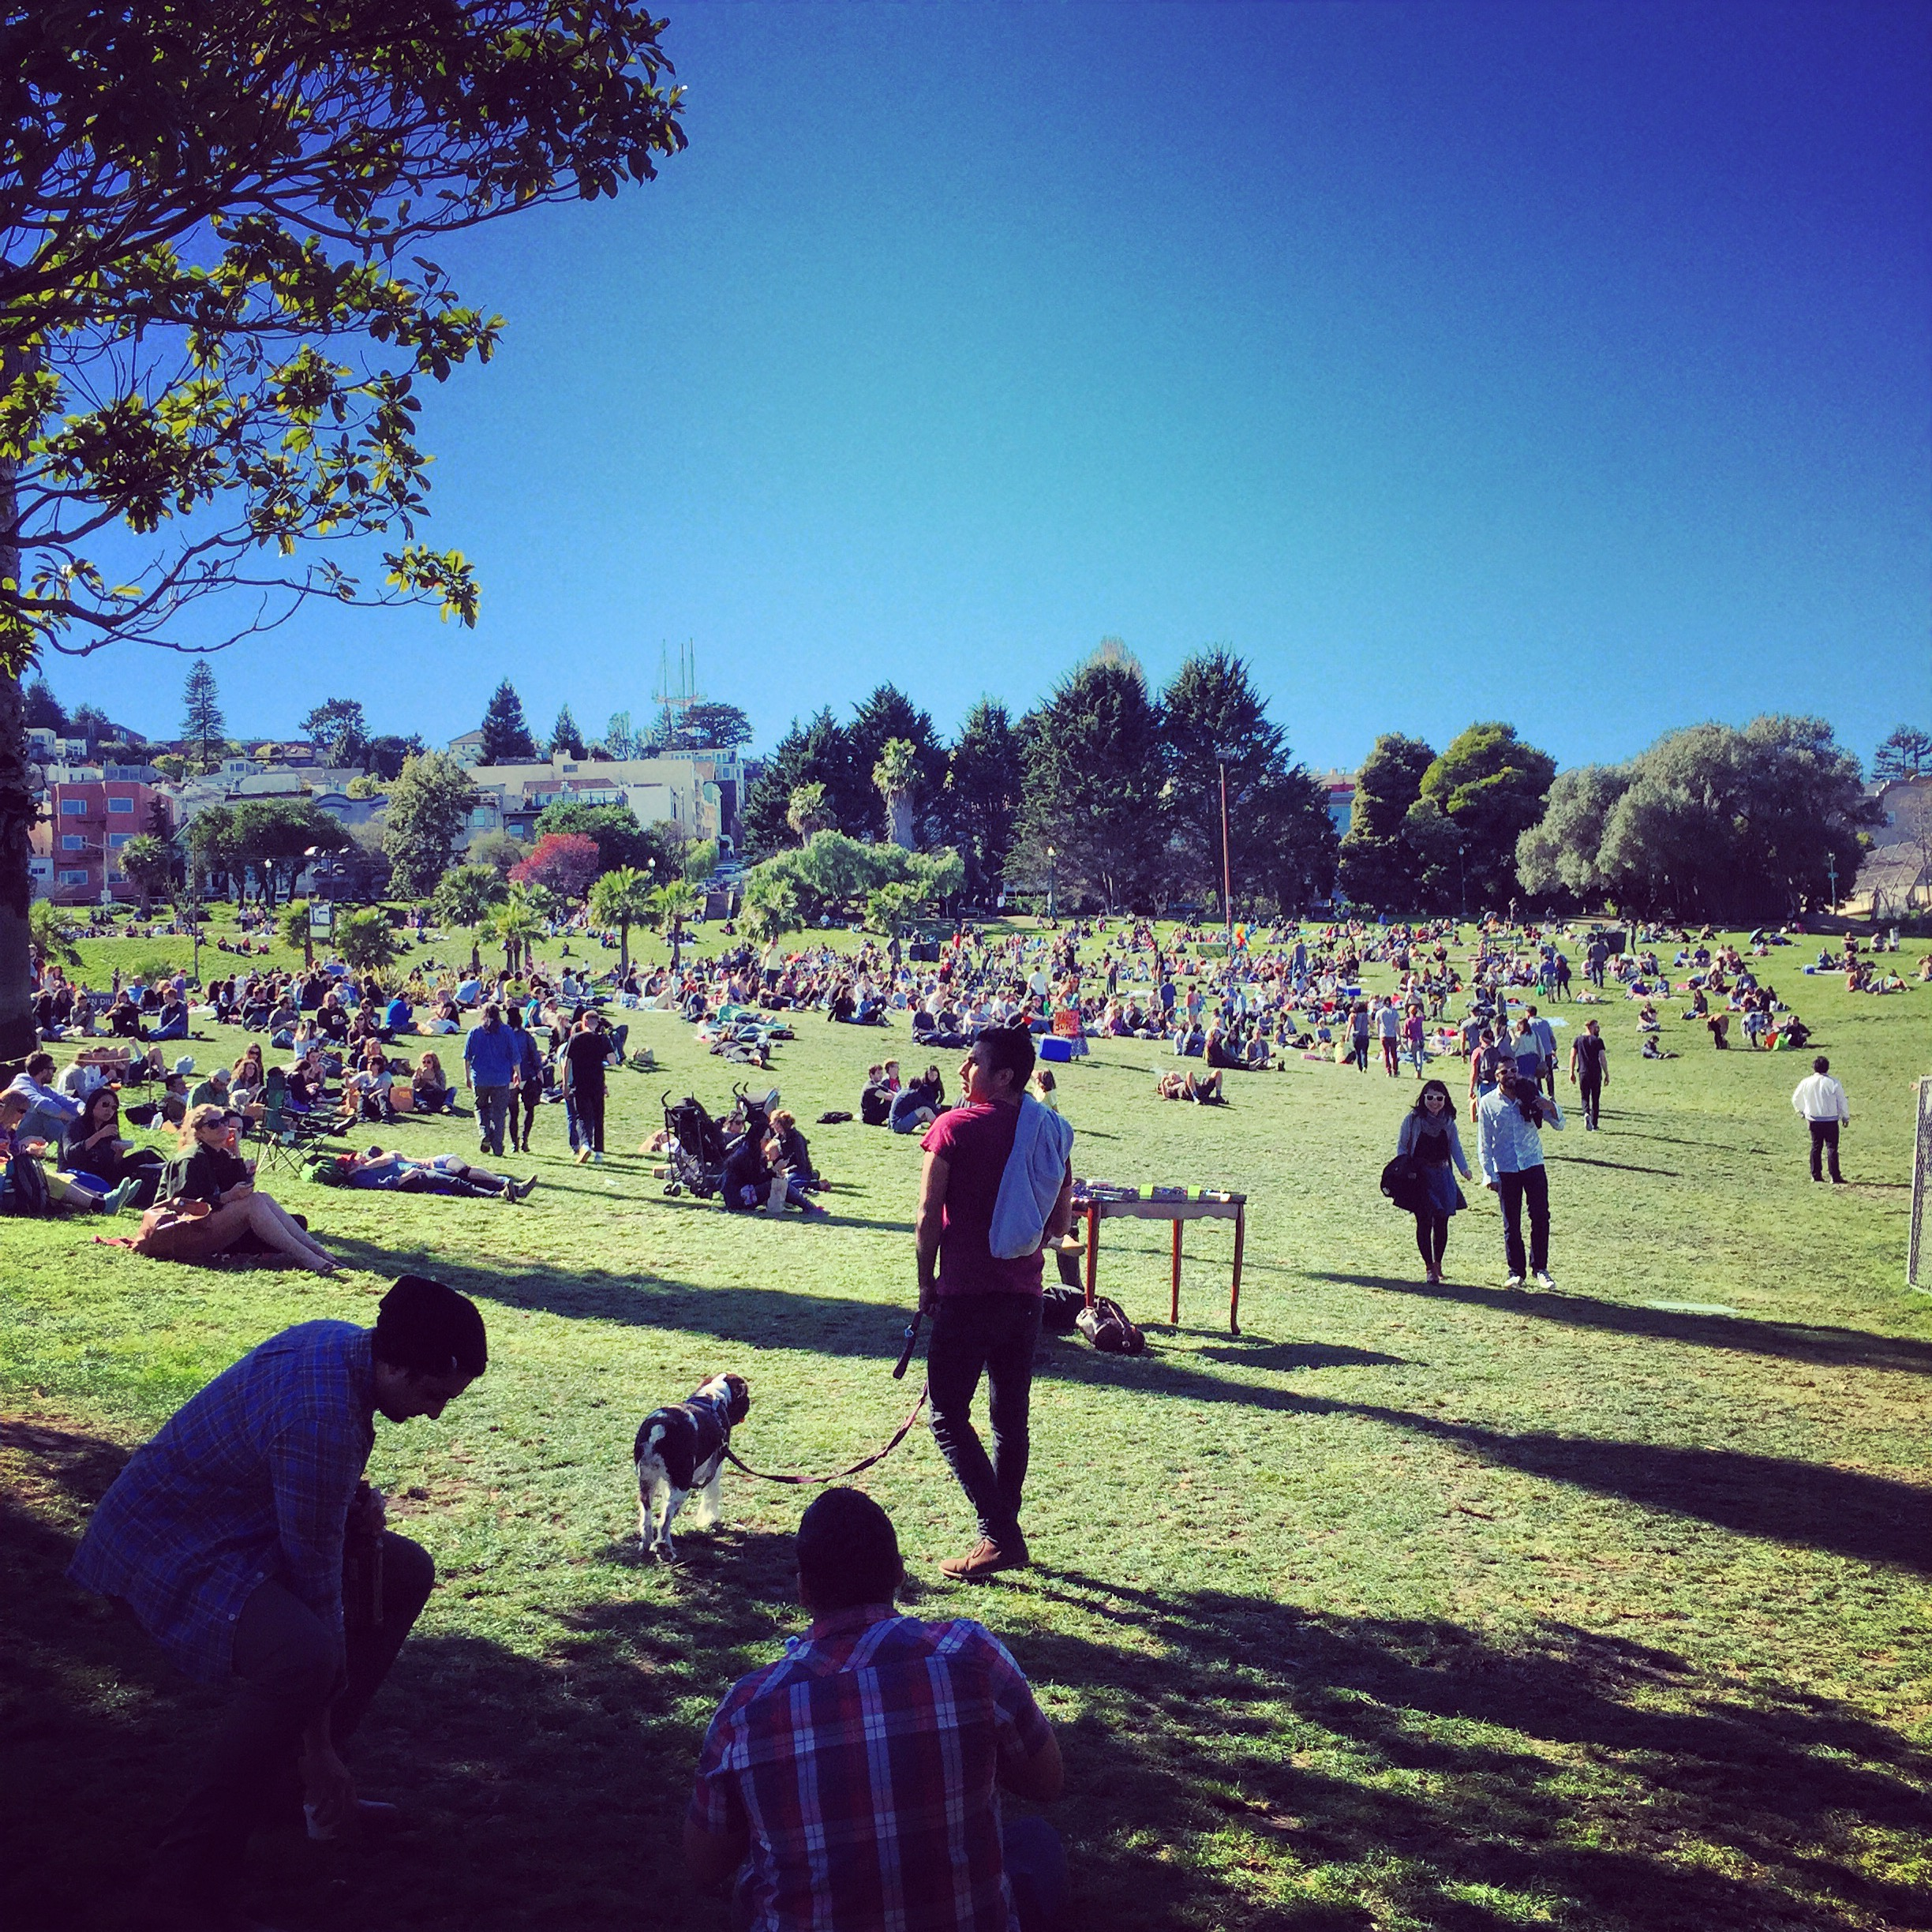 San Franciscans at play in Dolores Park.